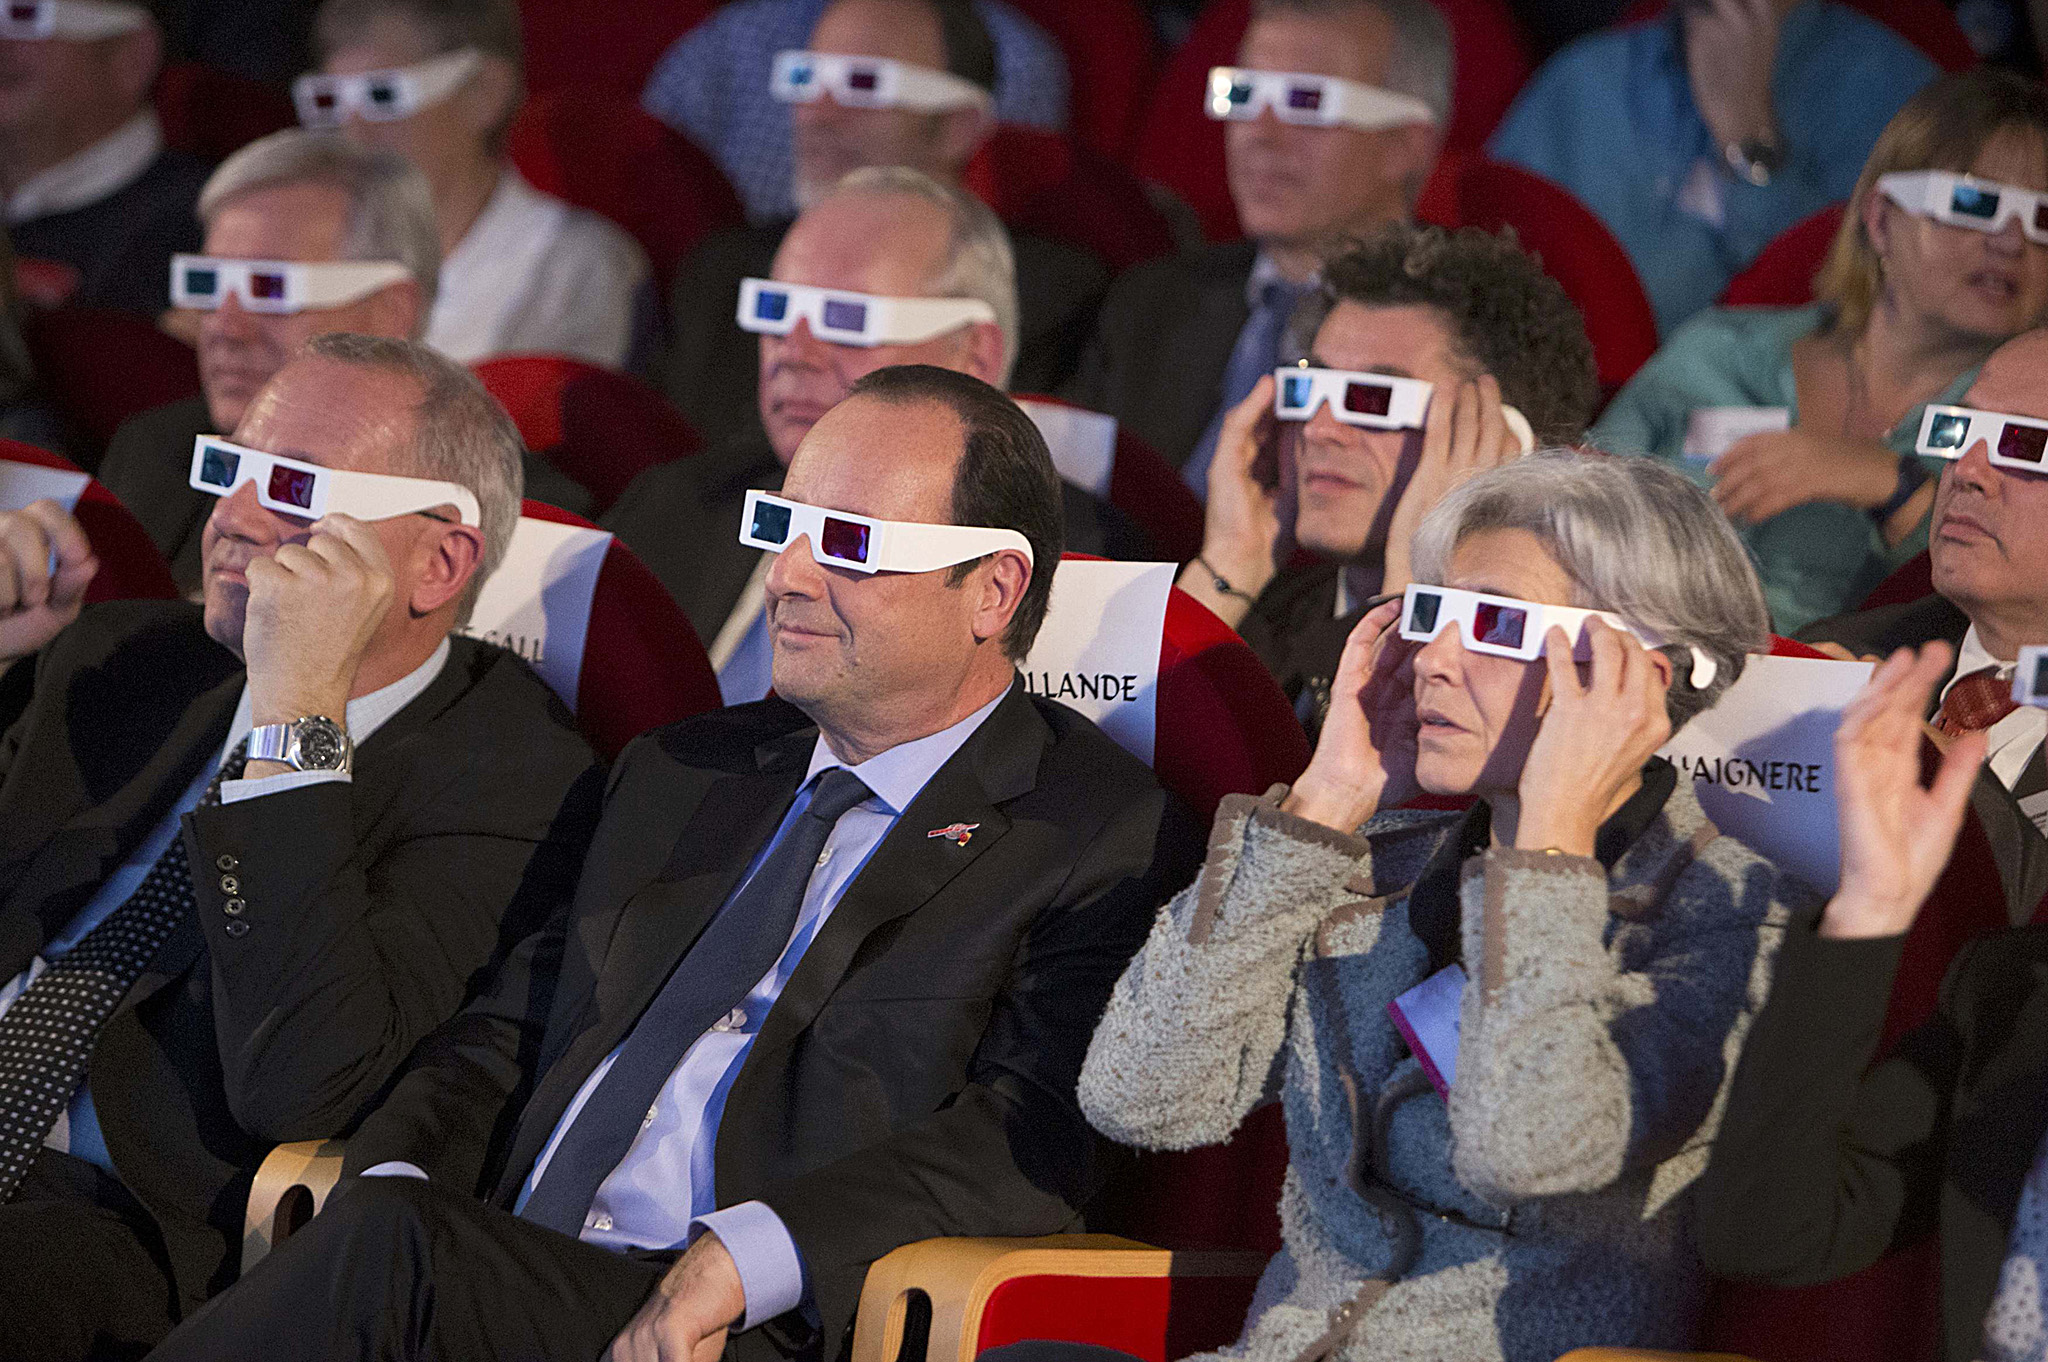 "rench National Centre for Space Studies (CNES) president Jean-Yves Le Gall (L), French President Francois Hollande (C) and former French astronaut Claudie Haignere wear 3D glasses during a visit at the Cite des Sciences at La Villette in Paris as they follow the successful landing of the Philae lander on comet 67P/ Churyumov-Gerasimenko. REUTERS/Jacques Brinon/Pool    REUTERS NEWS PICTURES HAS NOW MADE IT EASIER TO FIND THE BEST PHOTOS FROM THE MOST IMPORTANT STORIES AND TOP STANDALONES EACH DAY. Search for ""TPX"" in the IPTC Supplemental Category field or ""IMAGES OF THE DAY"" in the Caption field and you will find a selection of 80-100 of our daily Top Pictures."